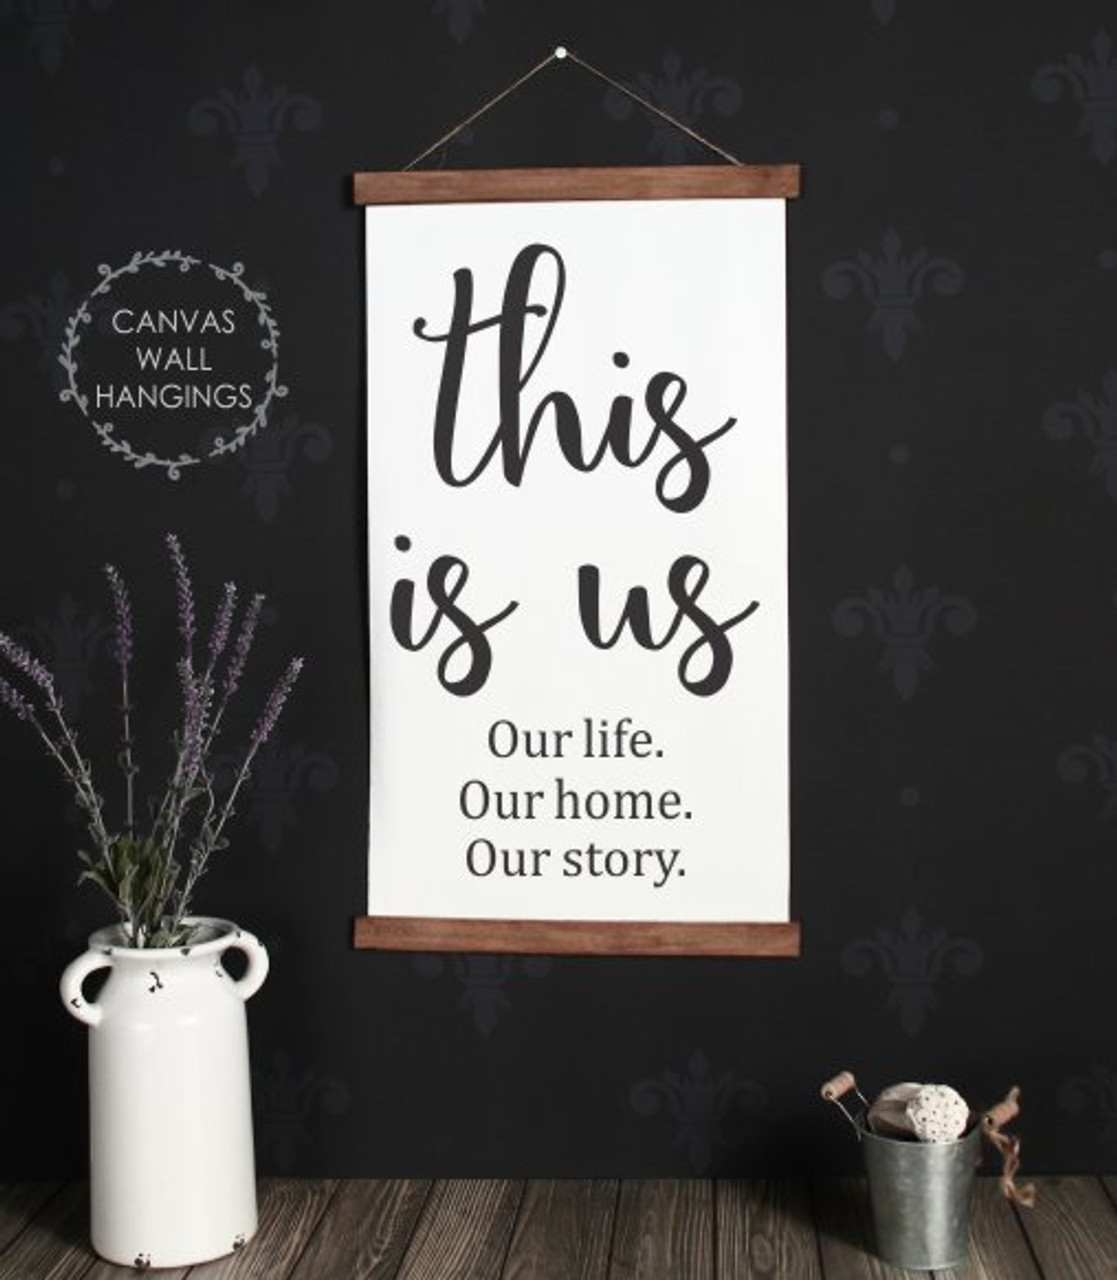 Wood Canvas Wall Hanging This Is Us Family Quote Wall Art